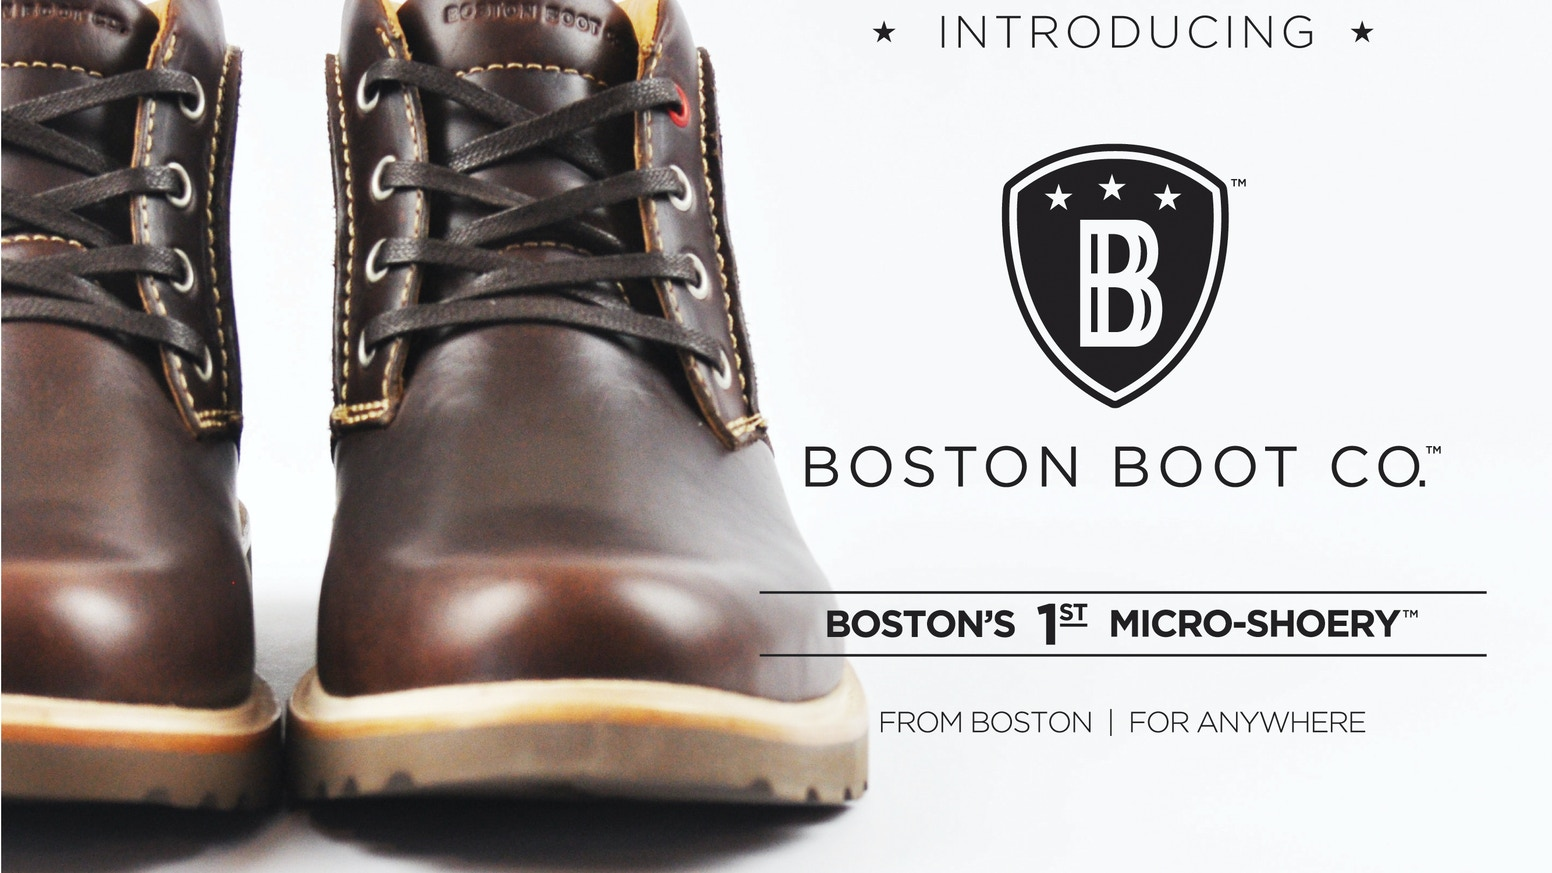 BOSTON'S 1st MICRO-SHOERY. We use the best ingredients in smaller batches, for guys who appreciate a well-made boot.